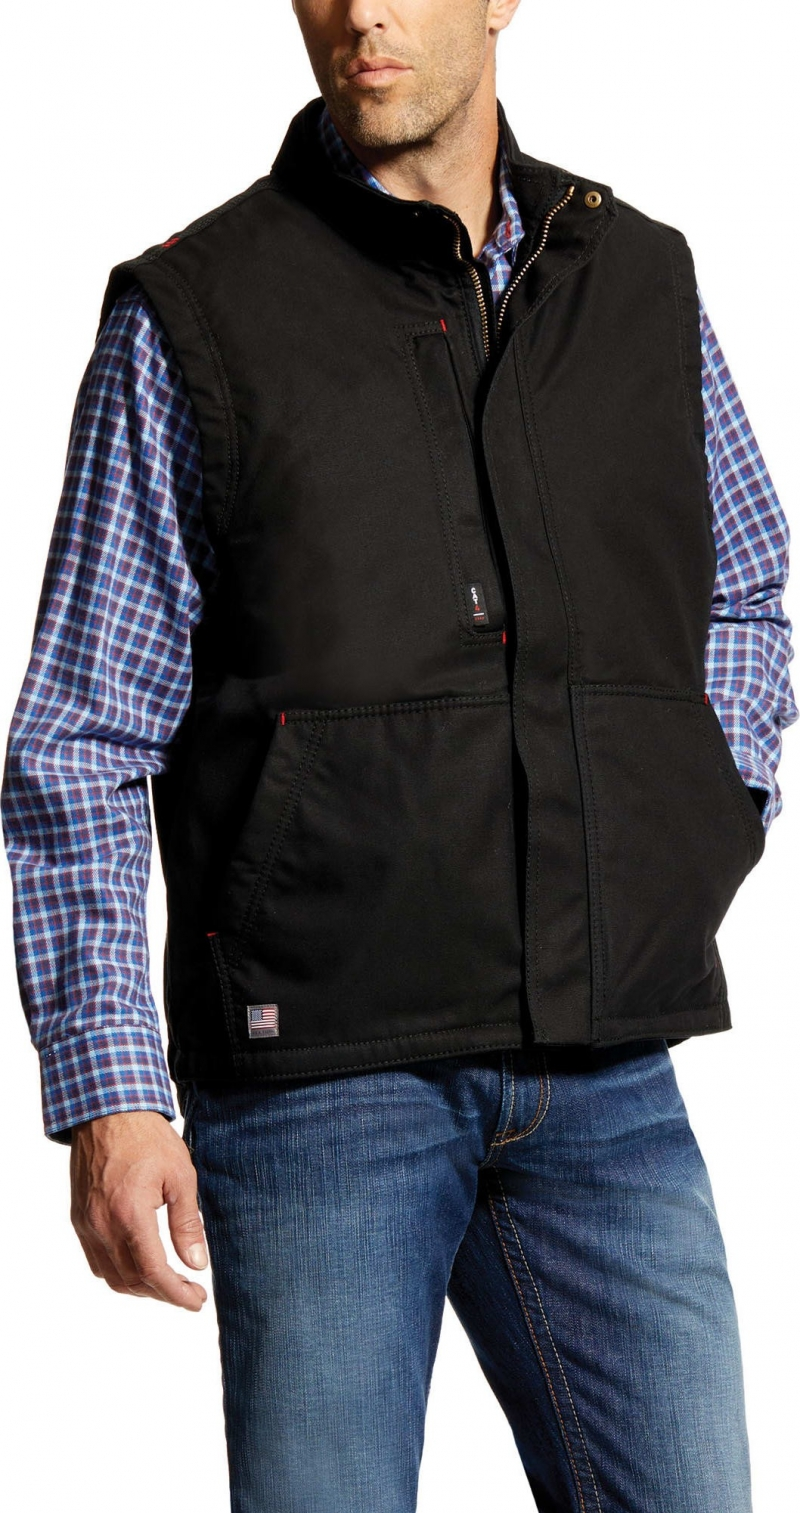 Ariat FR Workhorse Vest - Black